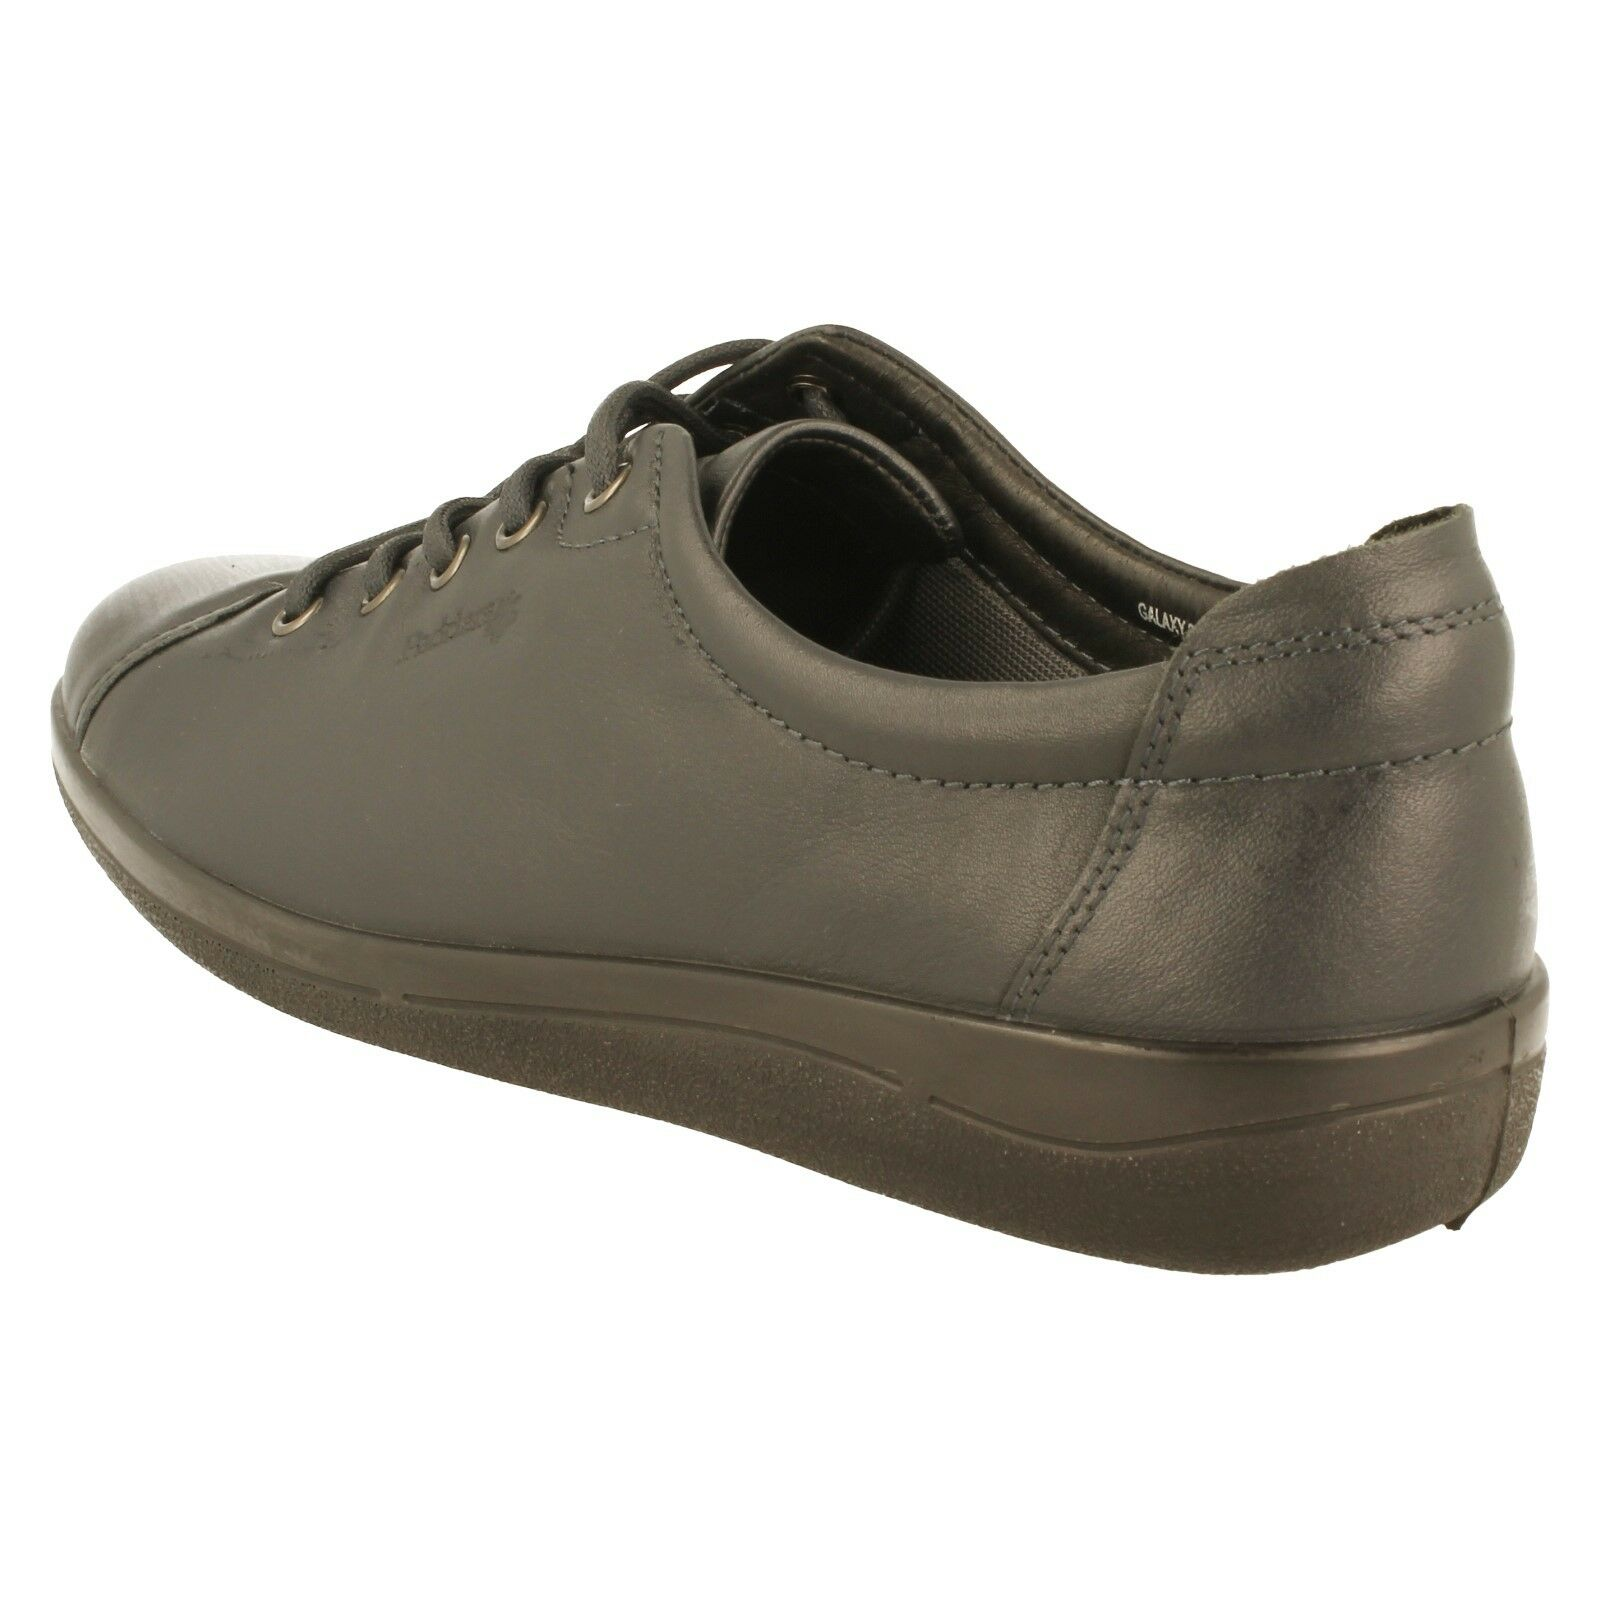 Padders GALAXIE Femmes Chaussures Cuir Confortable Large E Convient Chaussures Femmes 8024f1